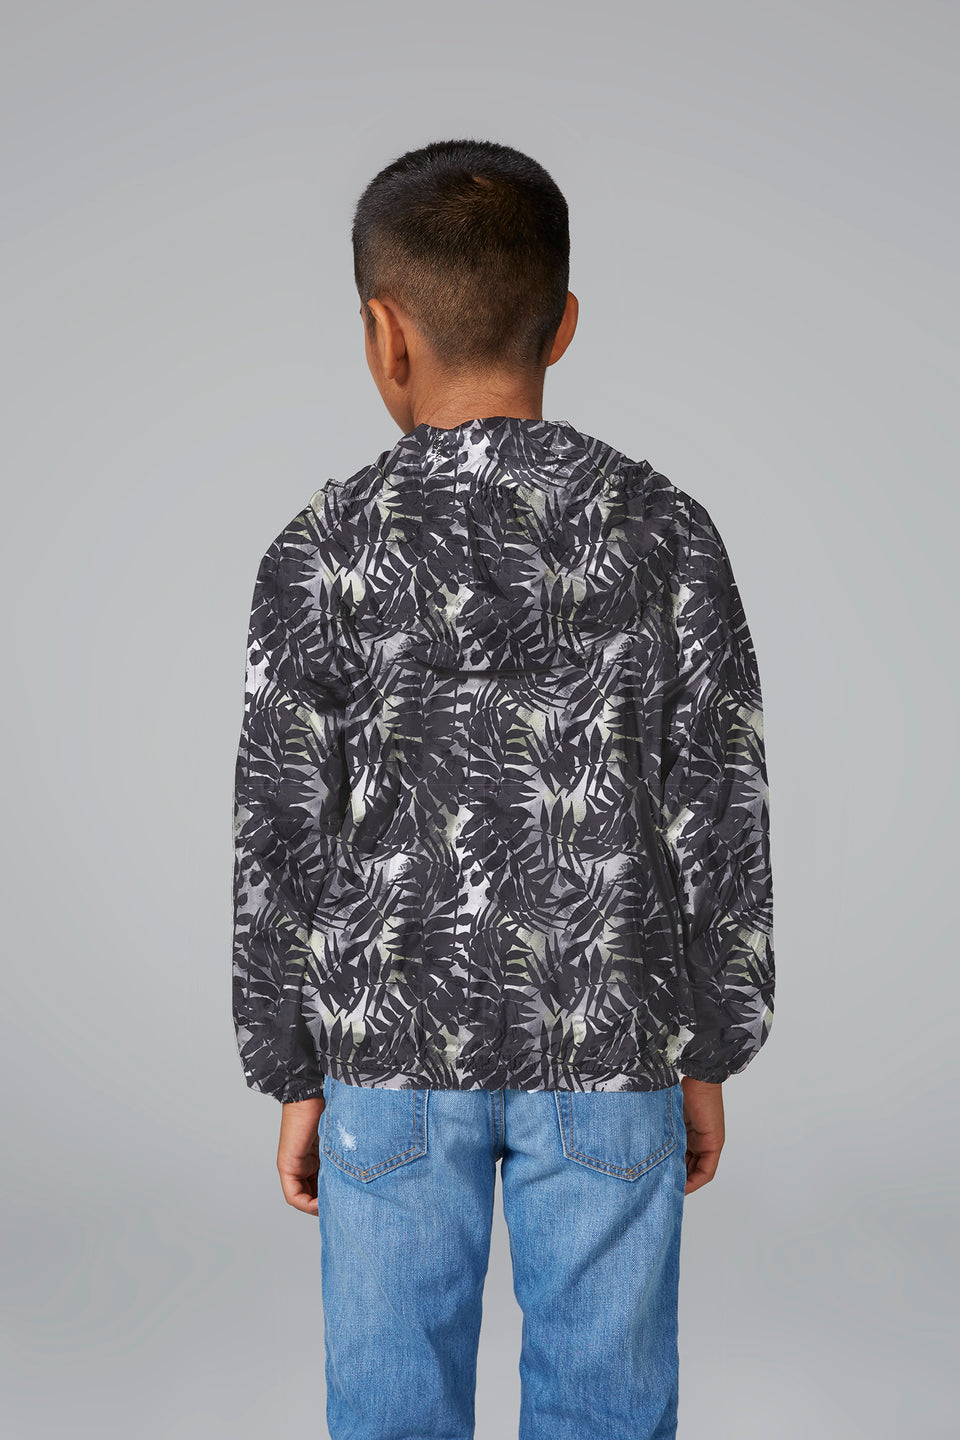 Sam Print - Kids Palm Print Full Zip Packable Rain Jacket - Kids rain jackets -  O8lifestyle